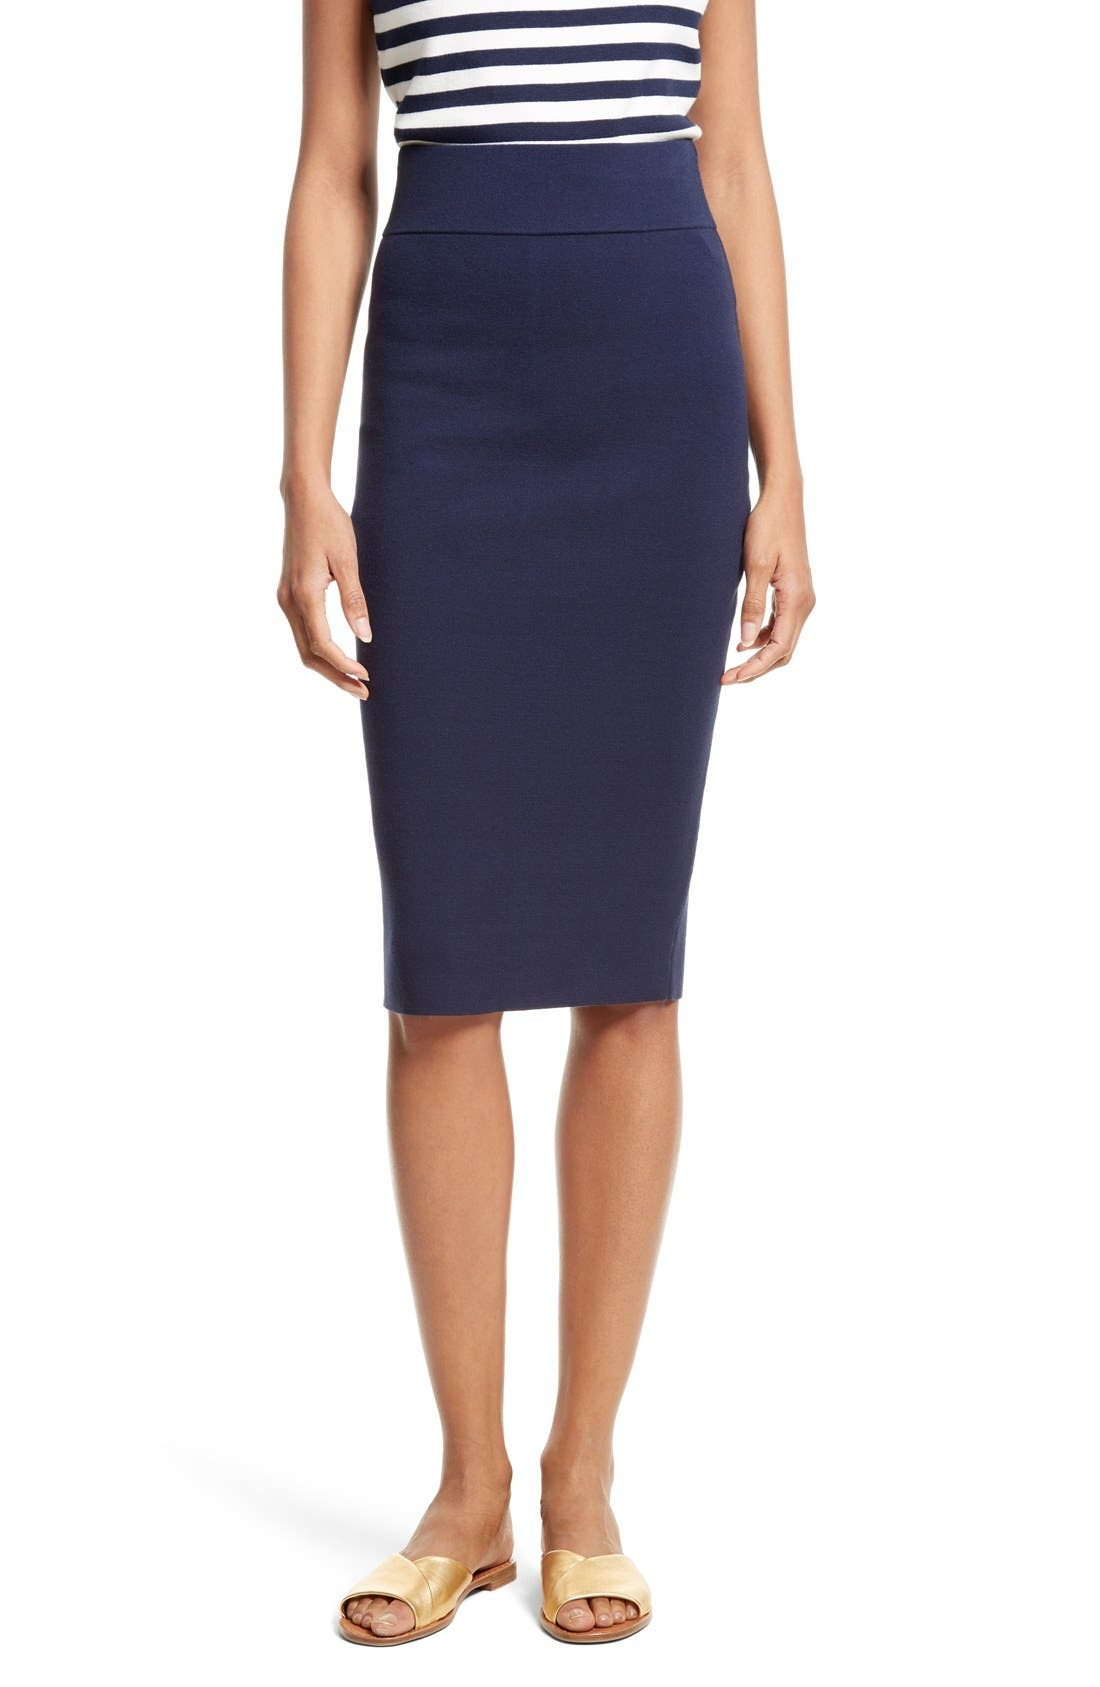 Alternate Image 1 Selected - Milly Stretch Knit Pencil Skirt